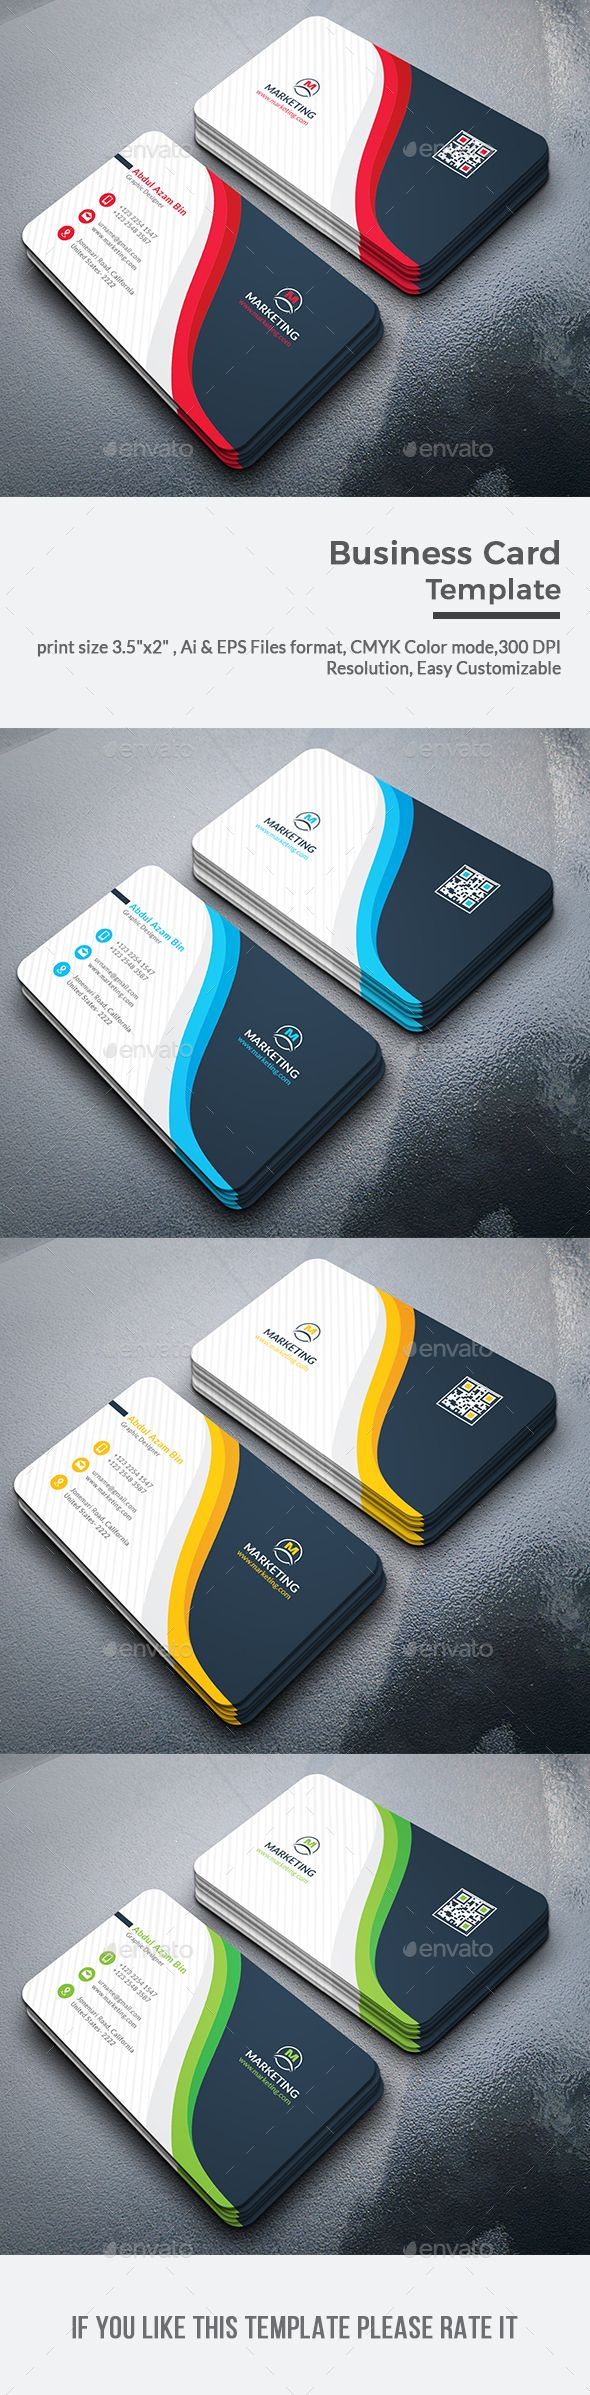 163 best business card print templates images on pinterest business card wajeb Image collections